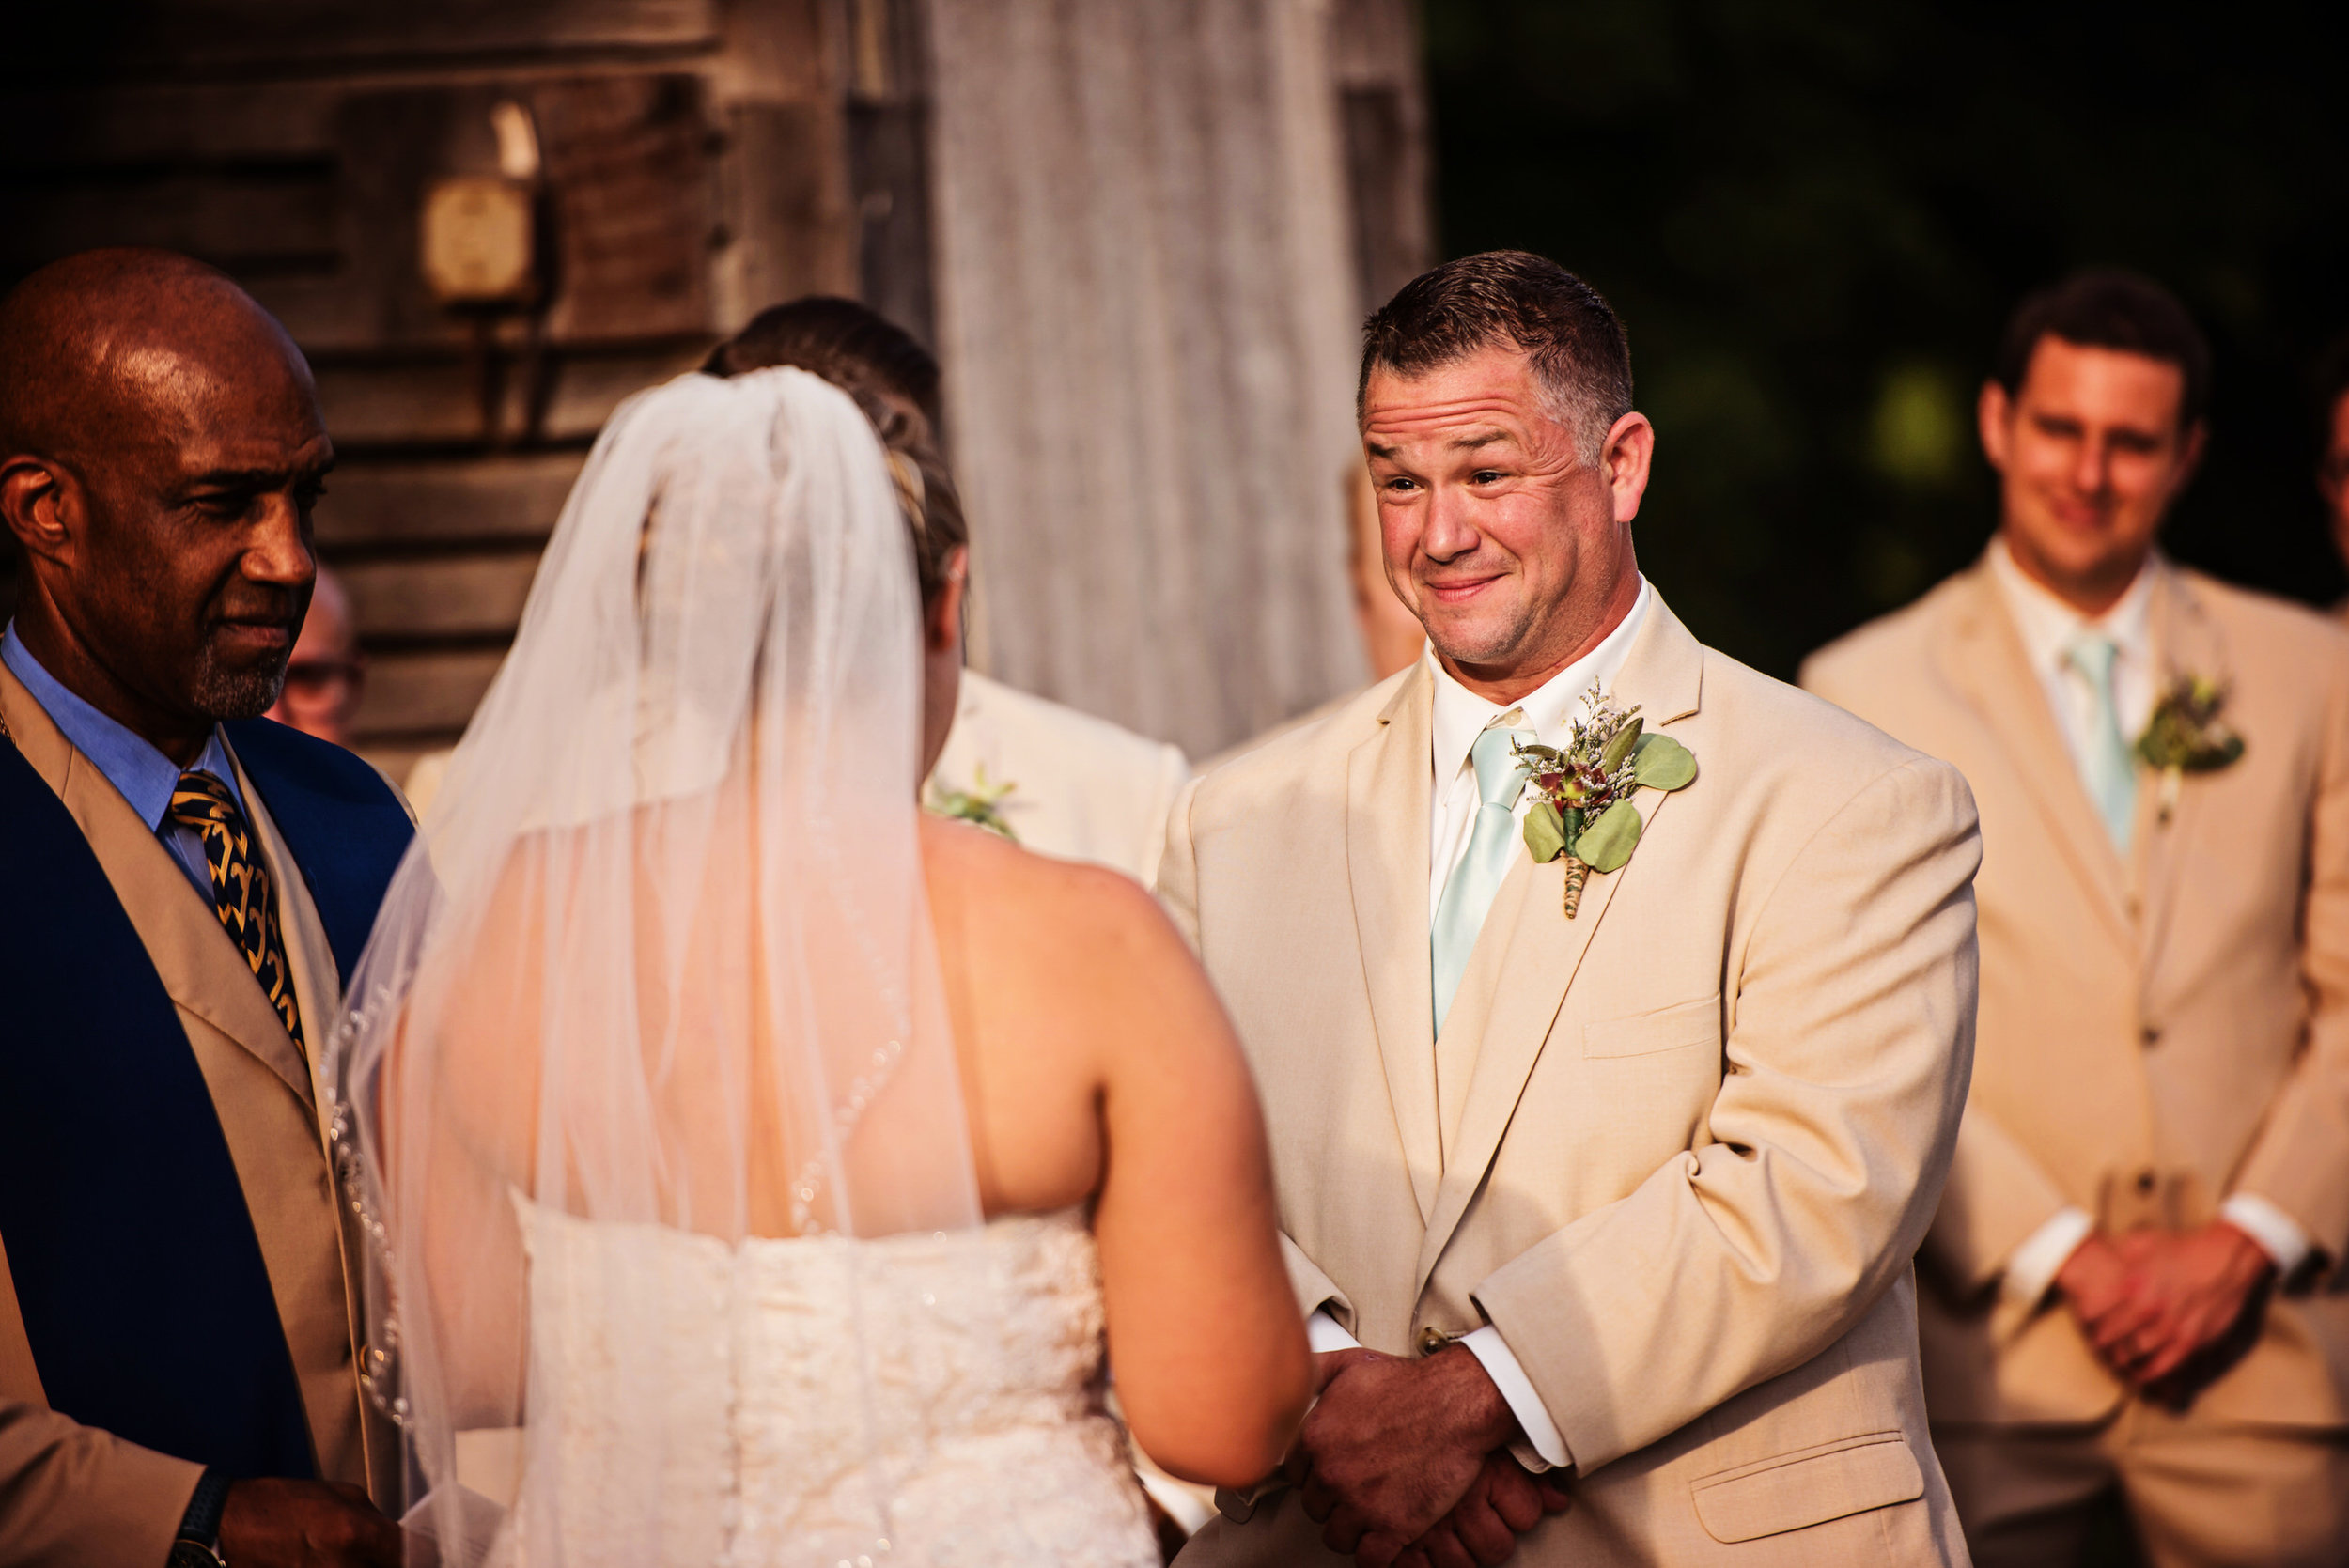 LiganoreWineryWedding-Amber&Andy-Ceremony-80.jpg